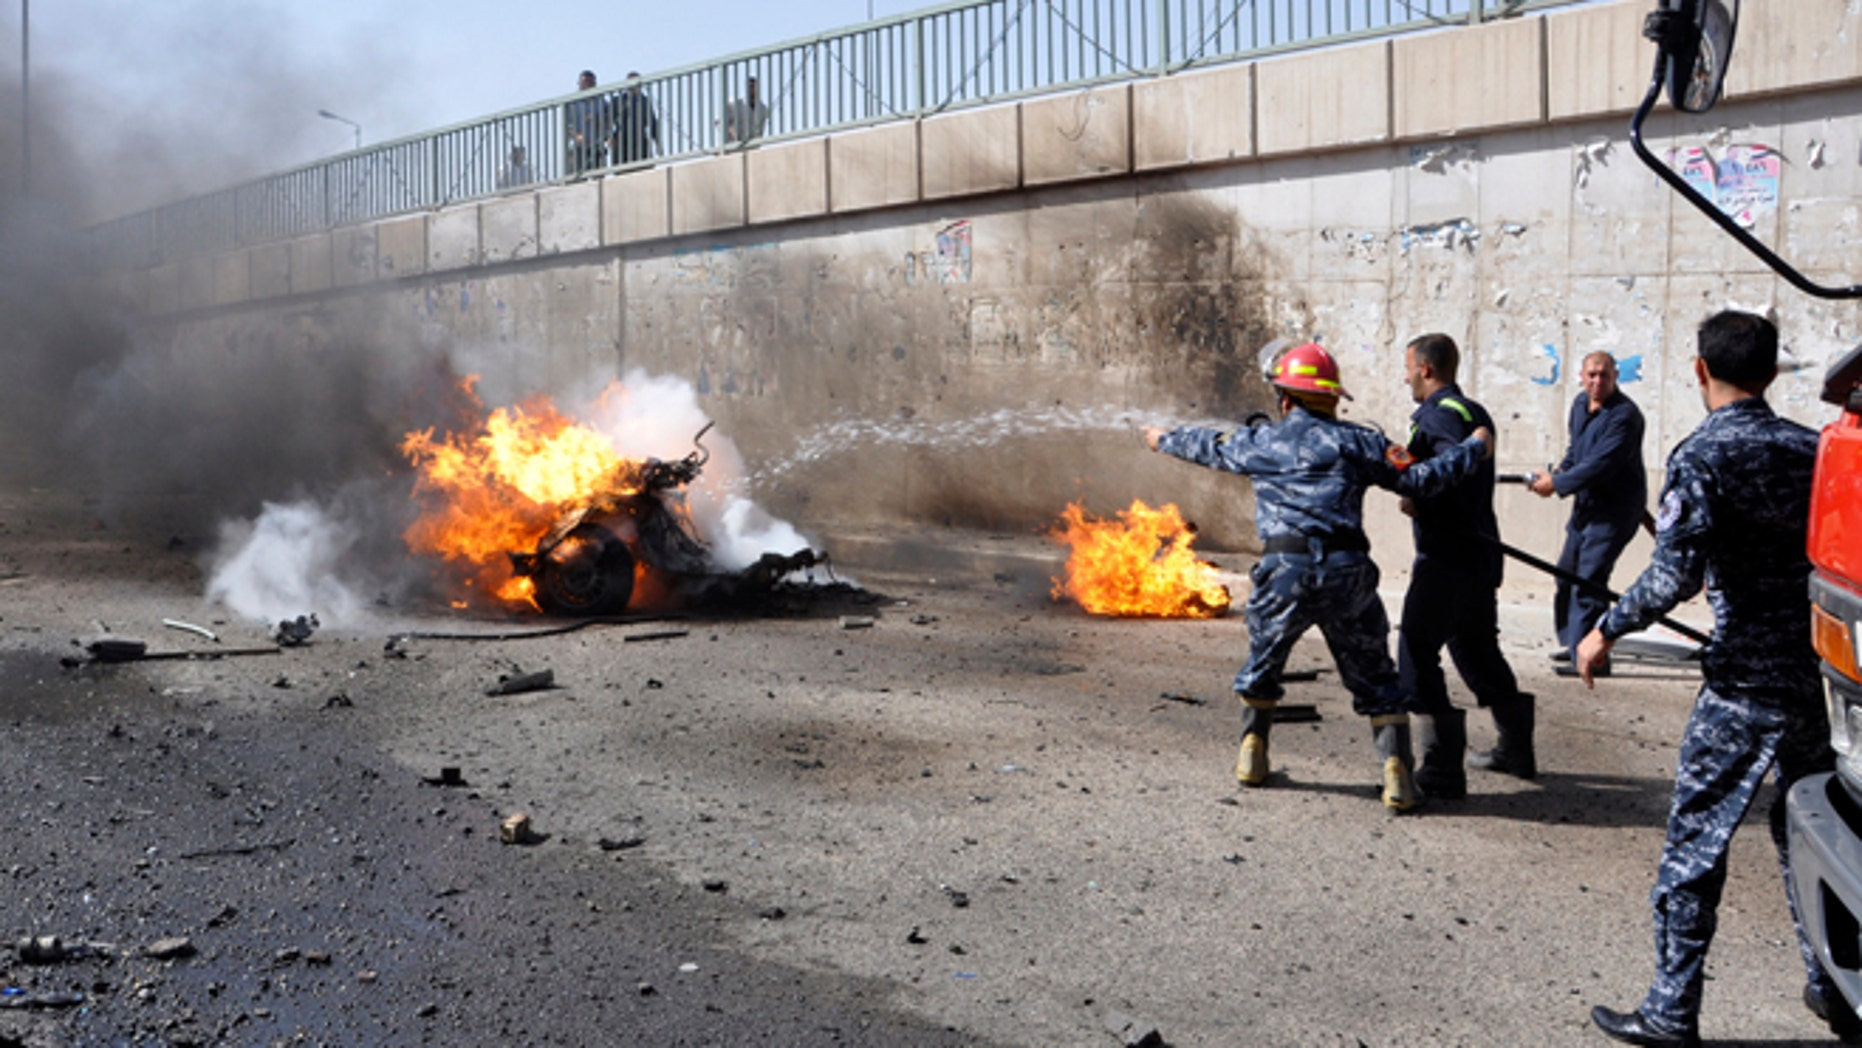 June 16, 2013: Firemen try to put out a burning vehicle after a car bomb attack, where police reported two dead and 19 injured, in Nasiriyah city, 233 miles south of Baghdad. At least 20 people were killed in car bombings and shootings across Iraq on Sunday, police and medics said. The car bombs were mainly in provinces with a high concentration of Shiite Muslims and one shooting took place in the northern city of Mosul.